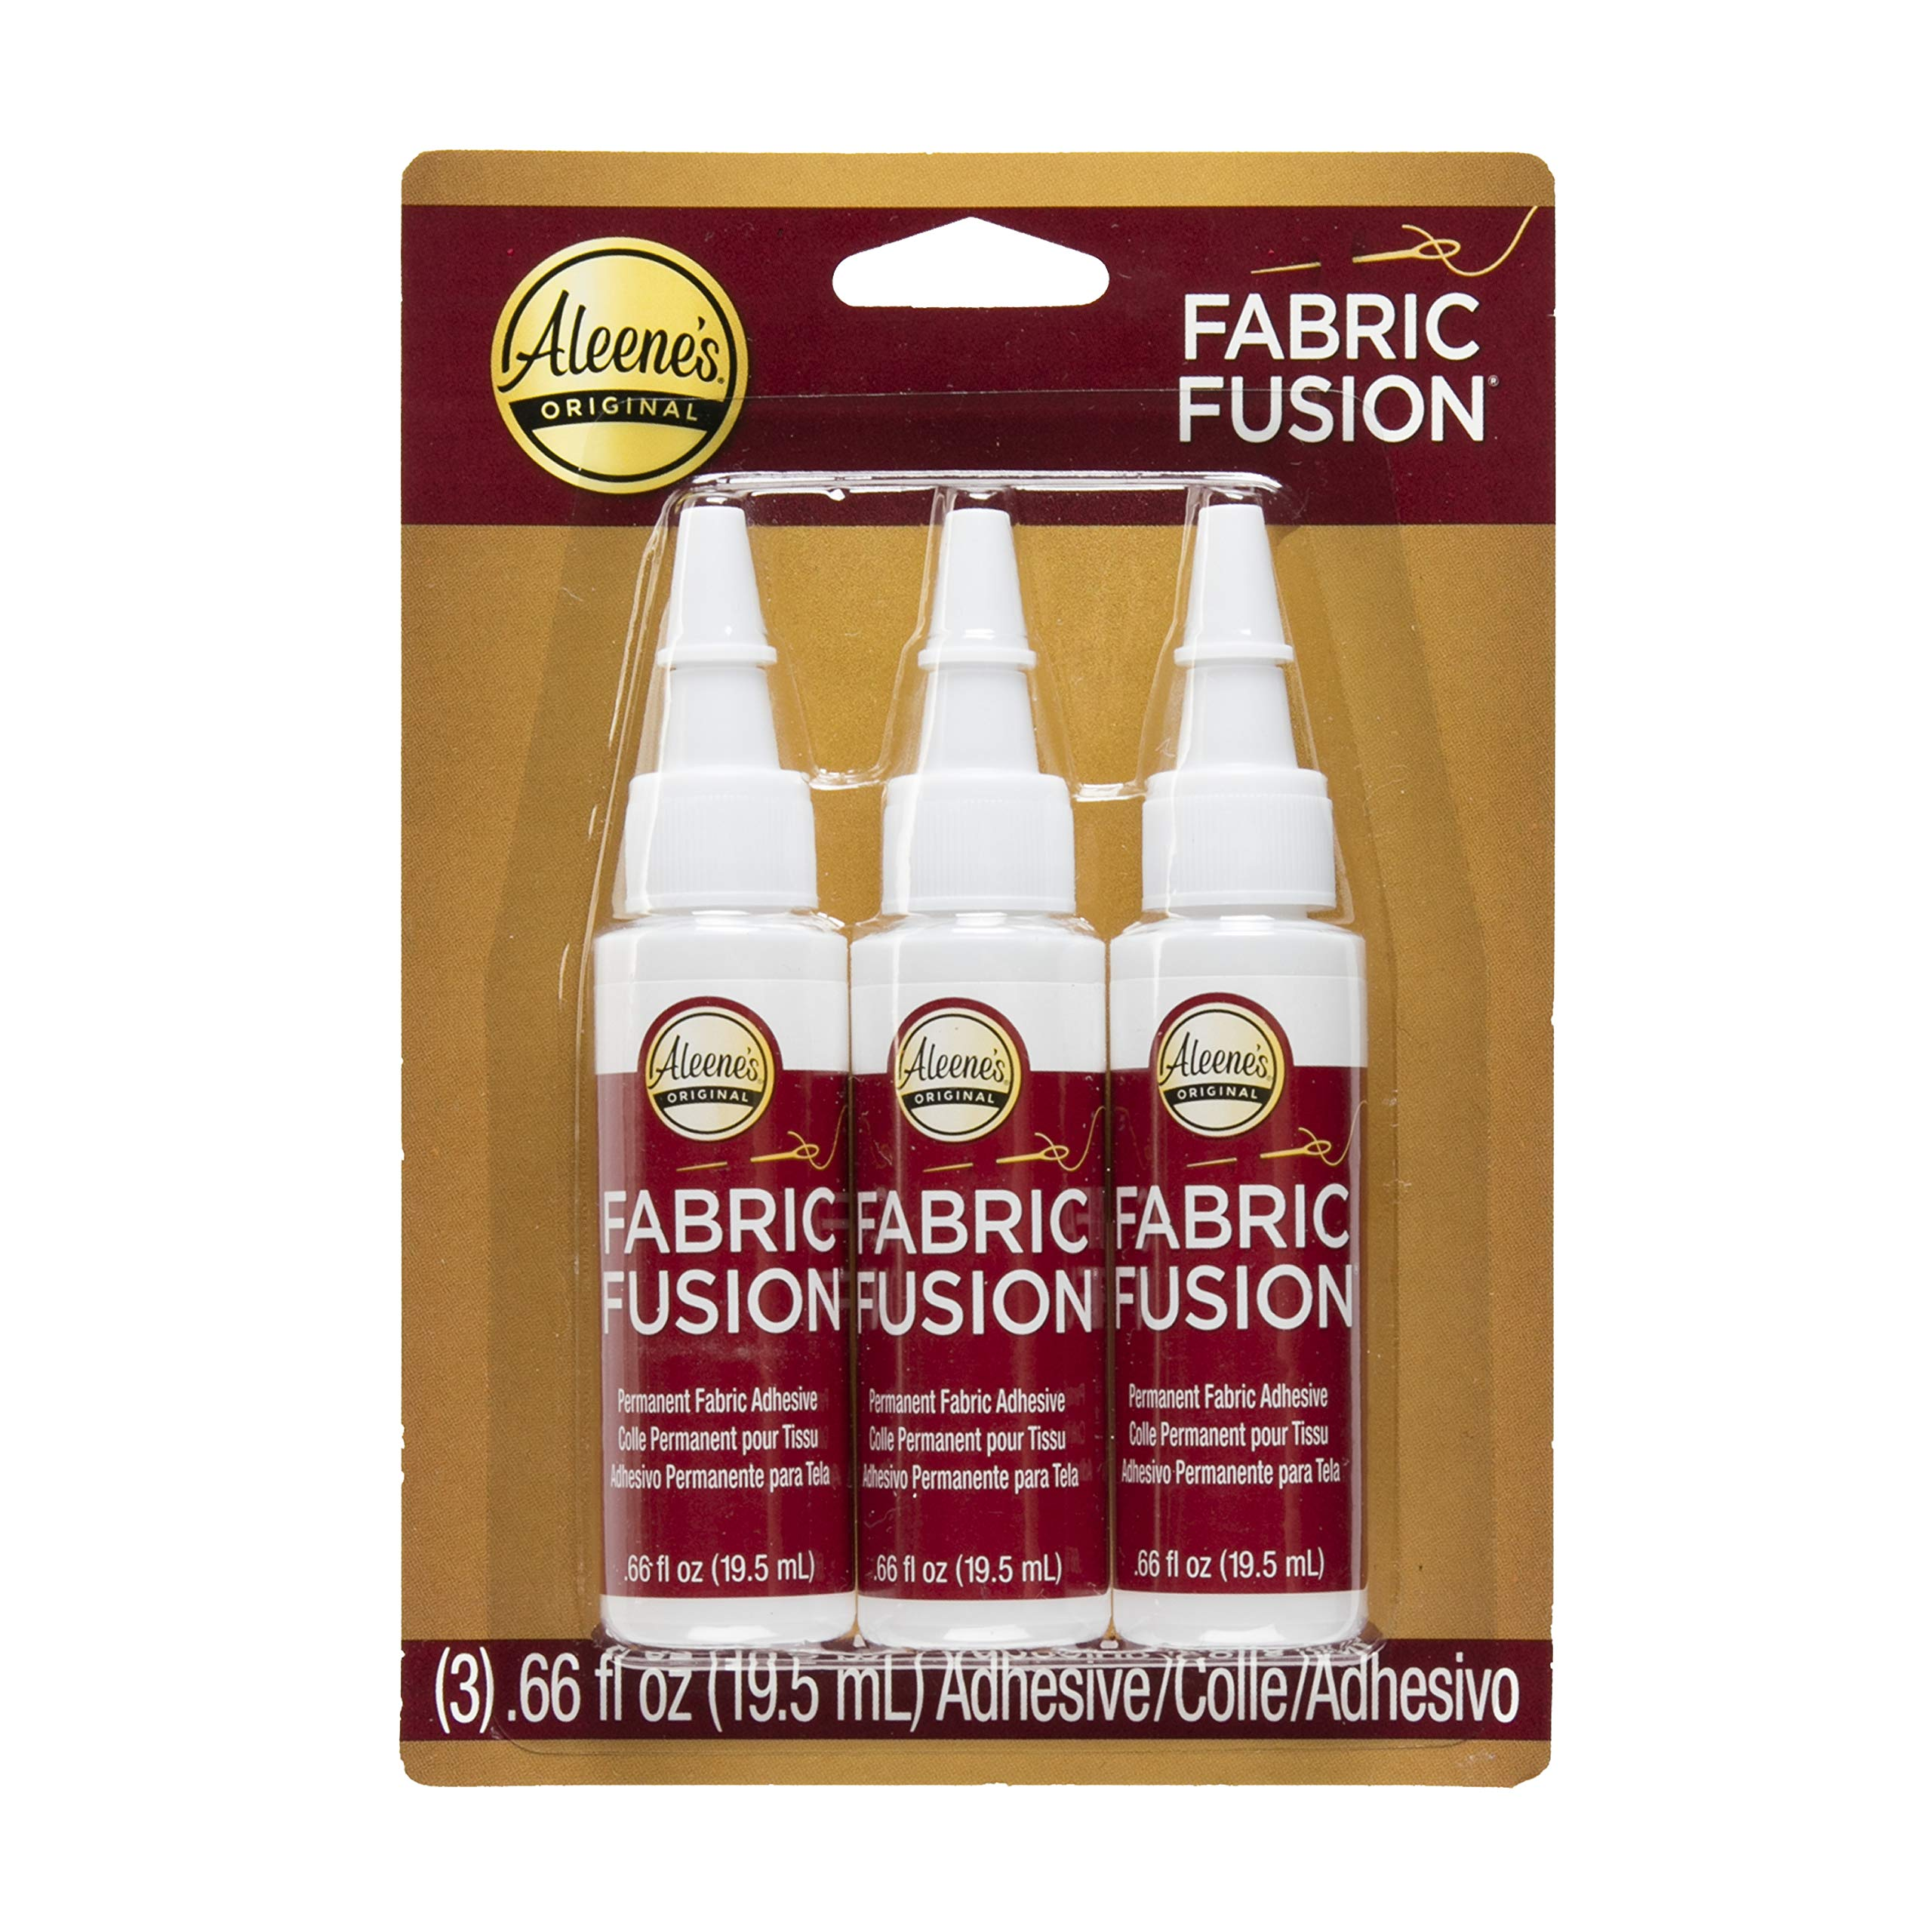 Aleene S Fabric Fusion Glue 3 Pack Buy Online In Cayman Islands At Desertcart